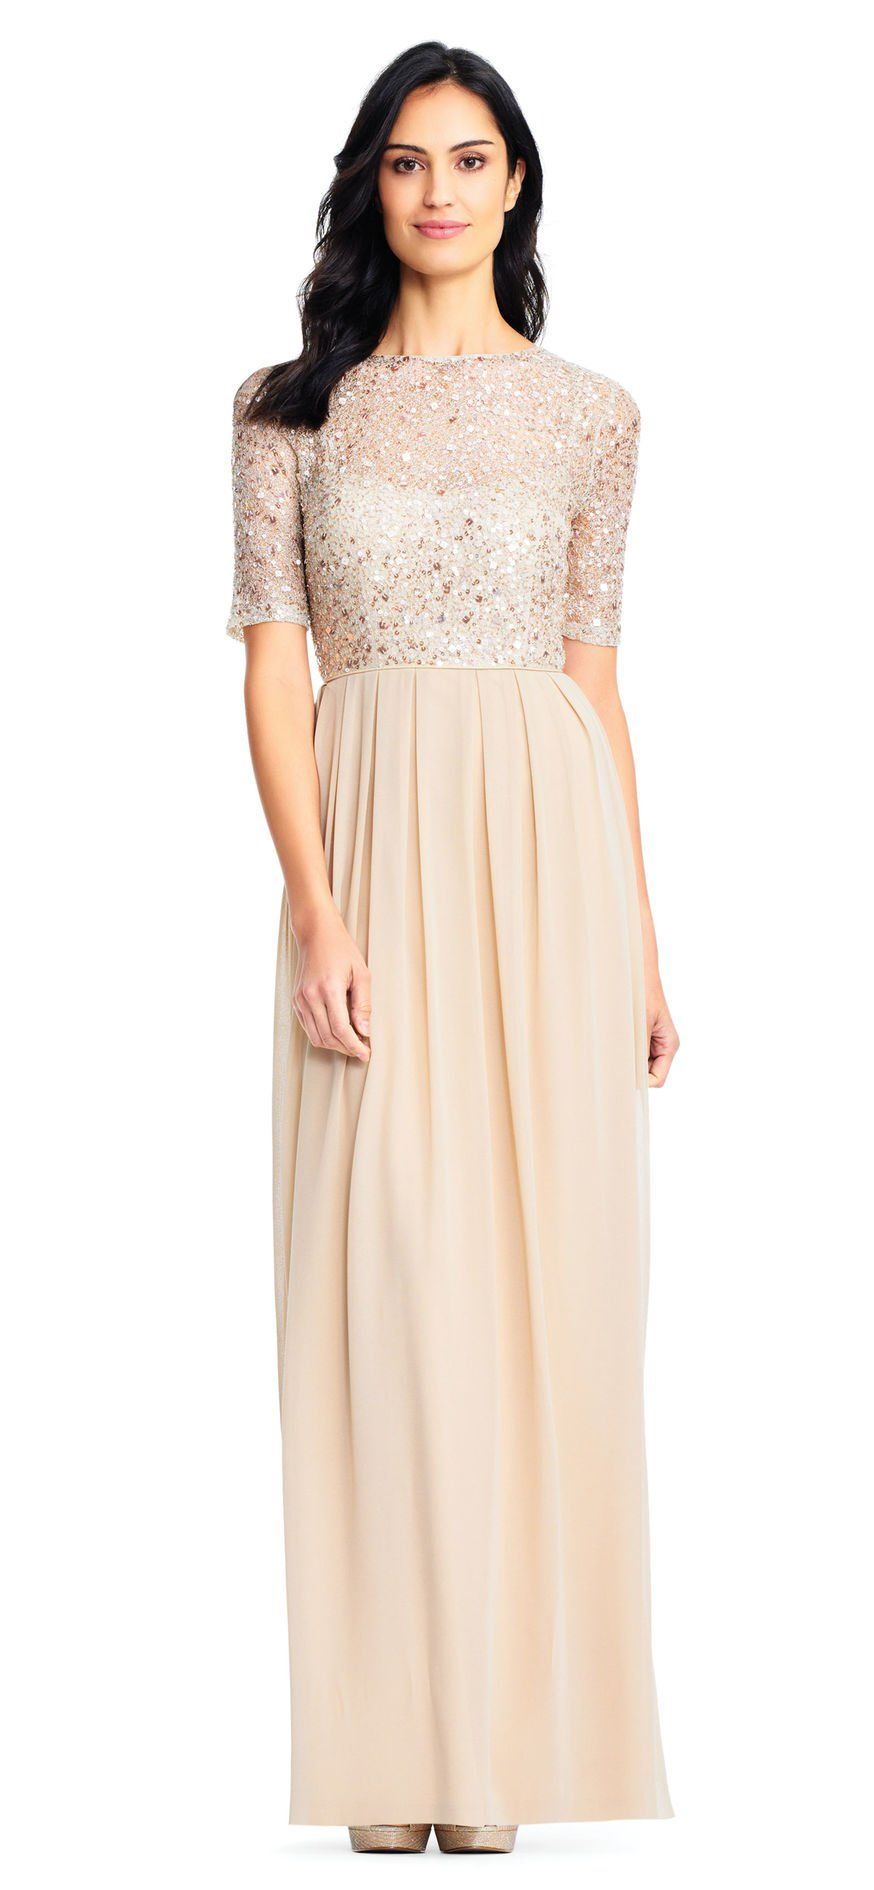 dd9667ef47fe Adrianna Papell | Short Sleeve Chiffon Dress with Sequin Lace Bodice ...